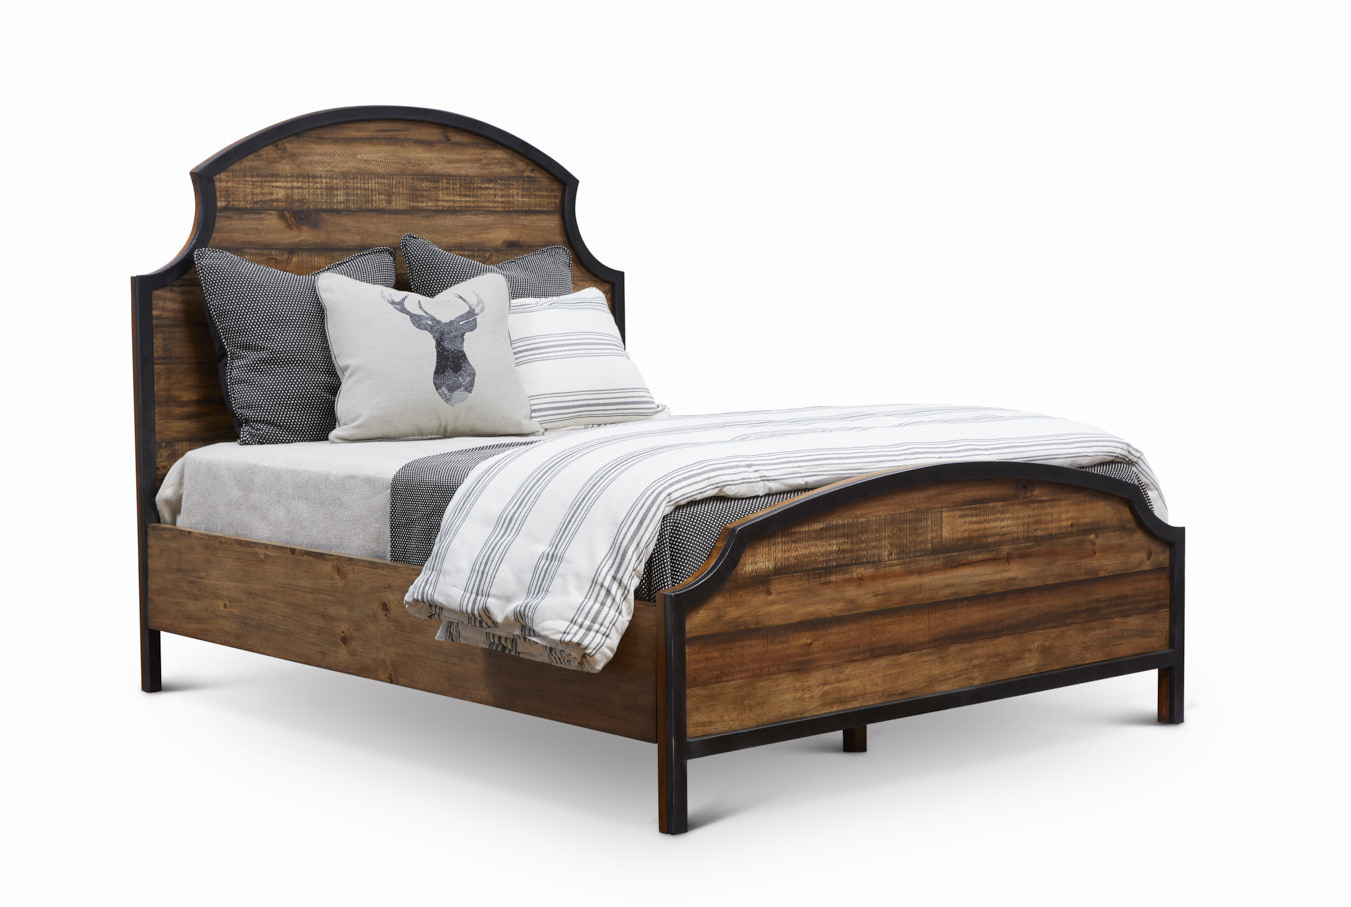 "Urban Frontier King Bed   King Headboard King Item # DI-188101HB Dimensions: 80.5""W x 2""D x 62""H  King Footboard Item # DI-188101FB Dimensions: 80.5""W x 2""D x 27.25""H  King Side Rails Item # DI-188101SR Dimensions: 82""L x 2""T x 11""H  Overall Assembled King Dimensions: 80.375""W x 86""D x 62""H"